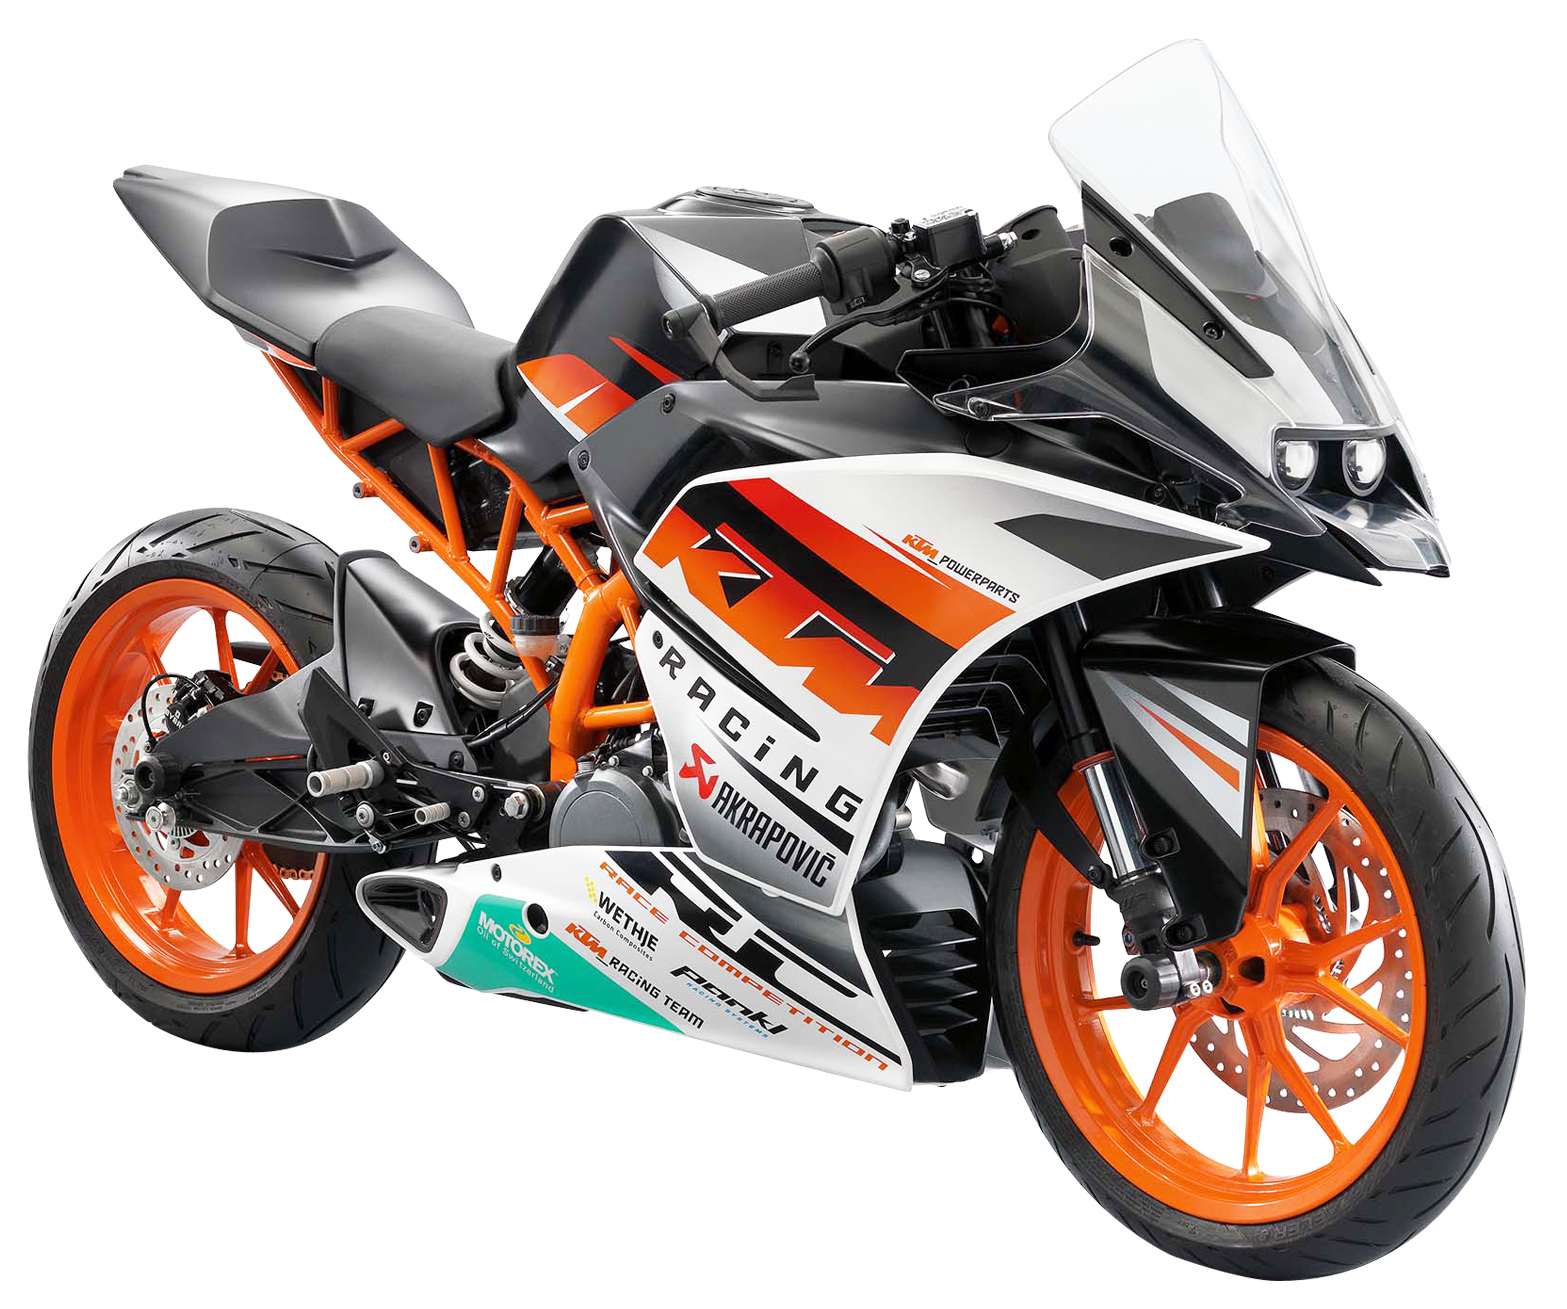 KTM RC390 Motorcycle Bike PNG Image.